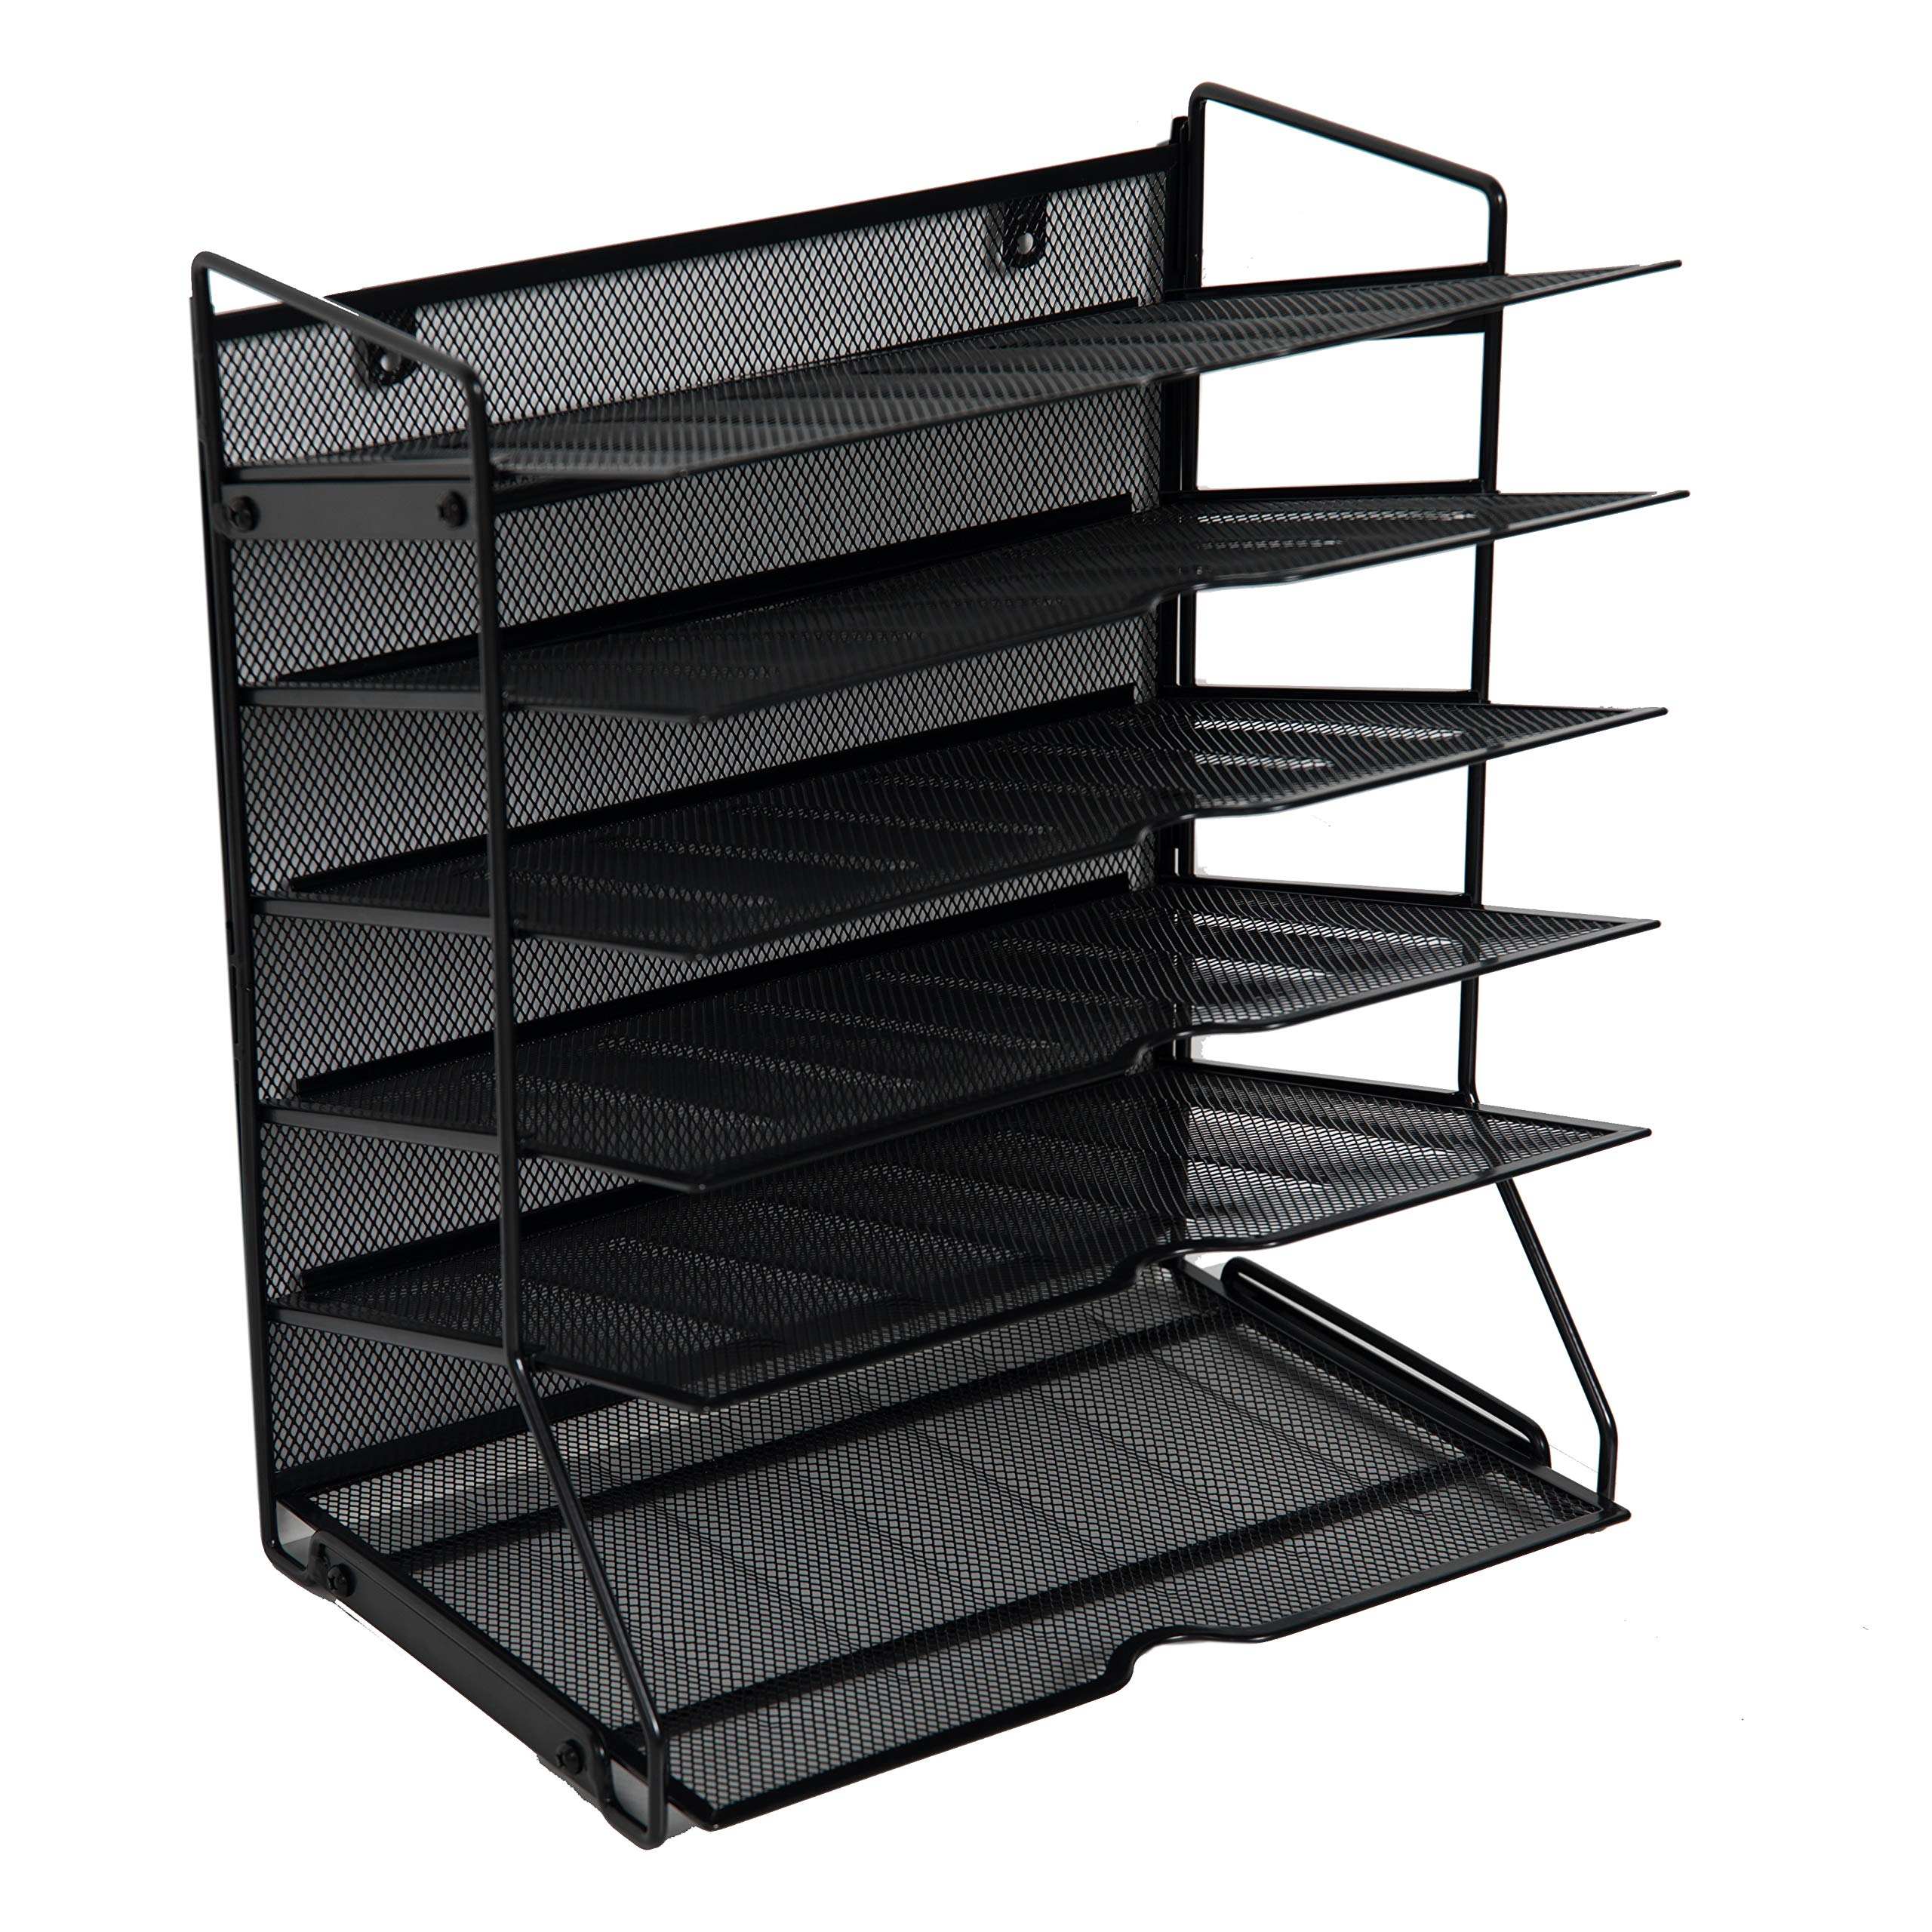 Klickpick Office 6 Sections Hanging Files Wall Mounted Metal Mesh Document File Organizer Magazine Holder Rack Desk Organizer Racks to Display Files, Magazine, Newspapers- Black